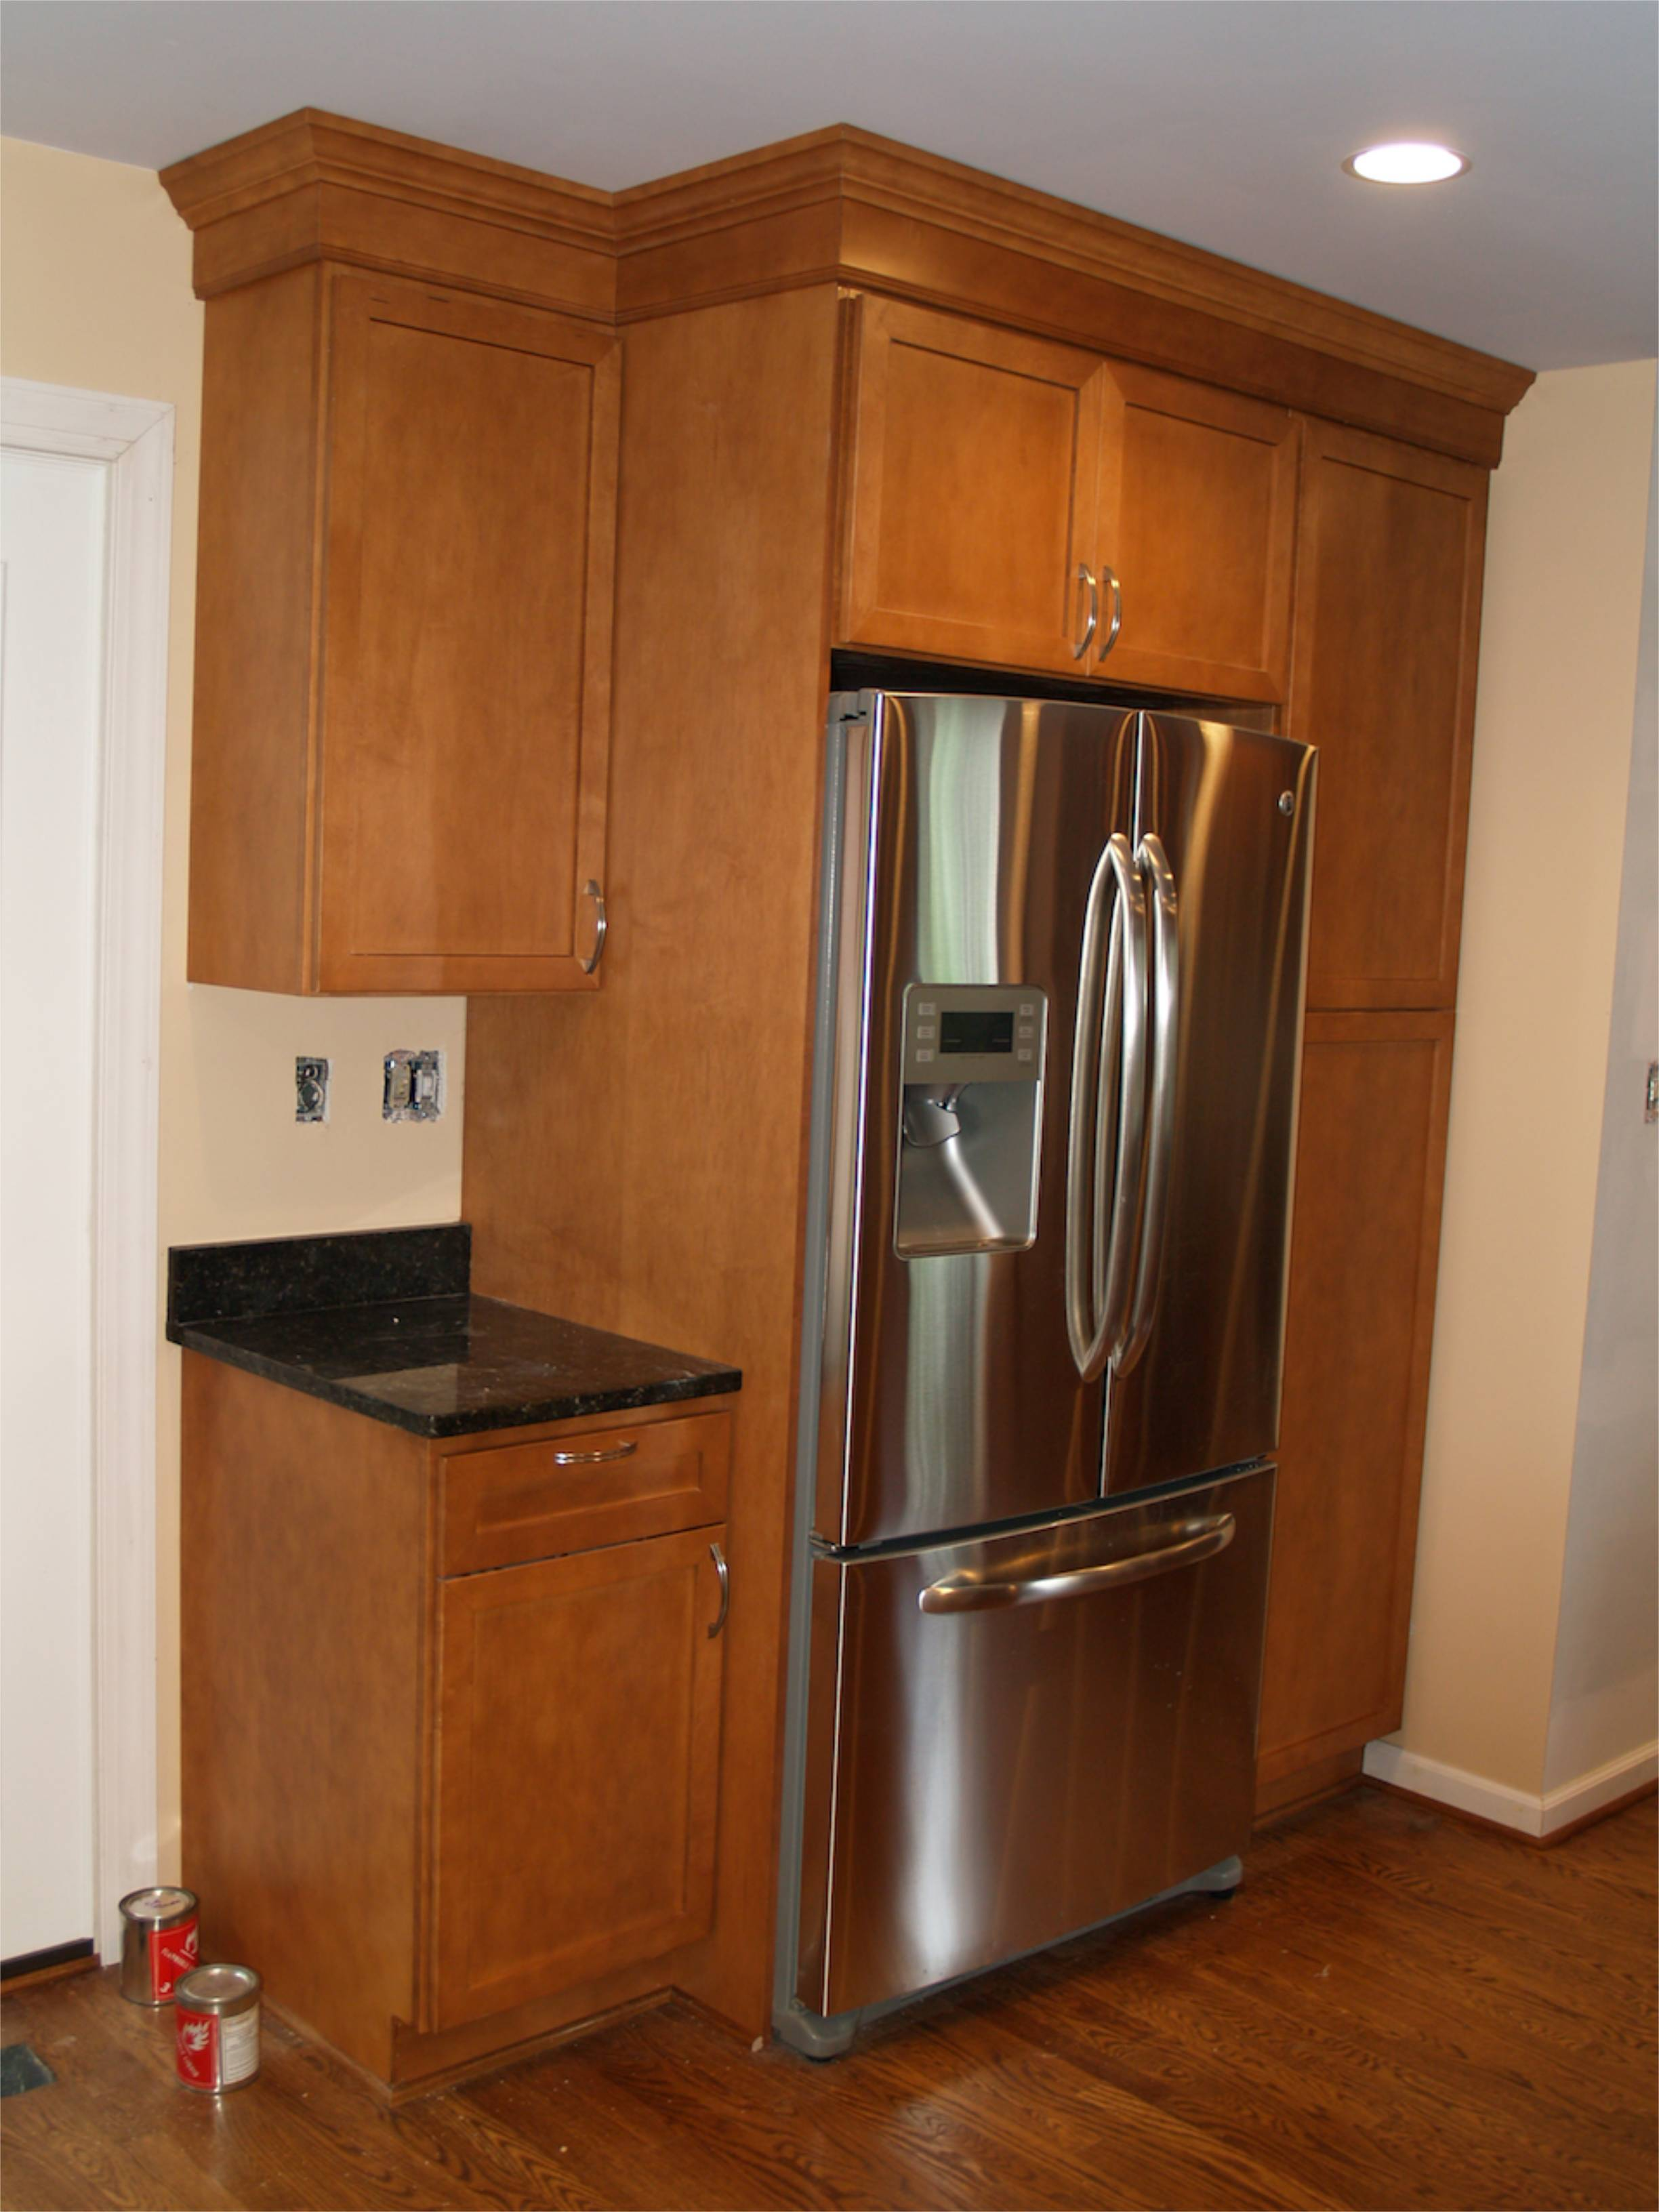 Where To Get A Kitchen From Of Refrigerator Kitchen Cabinet Images